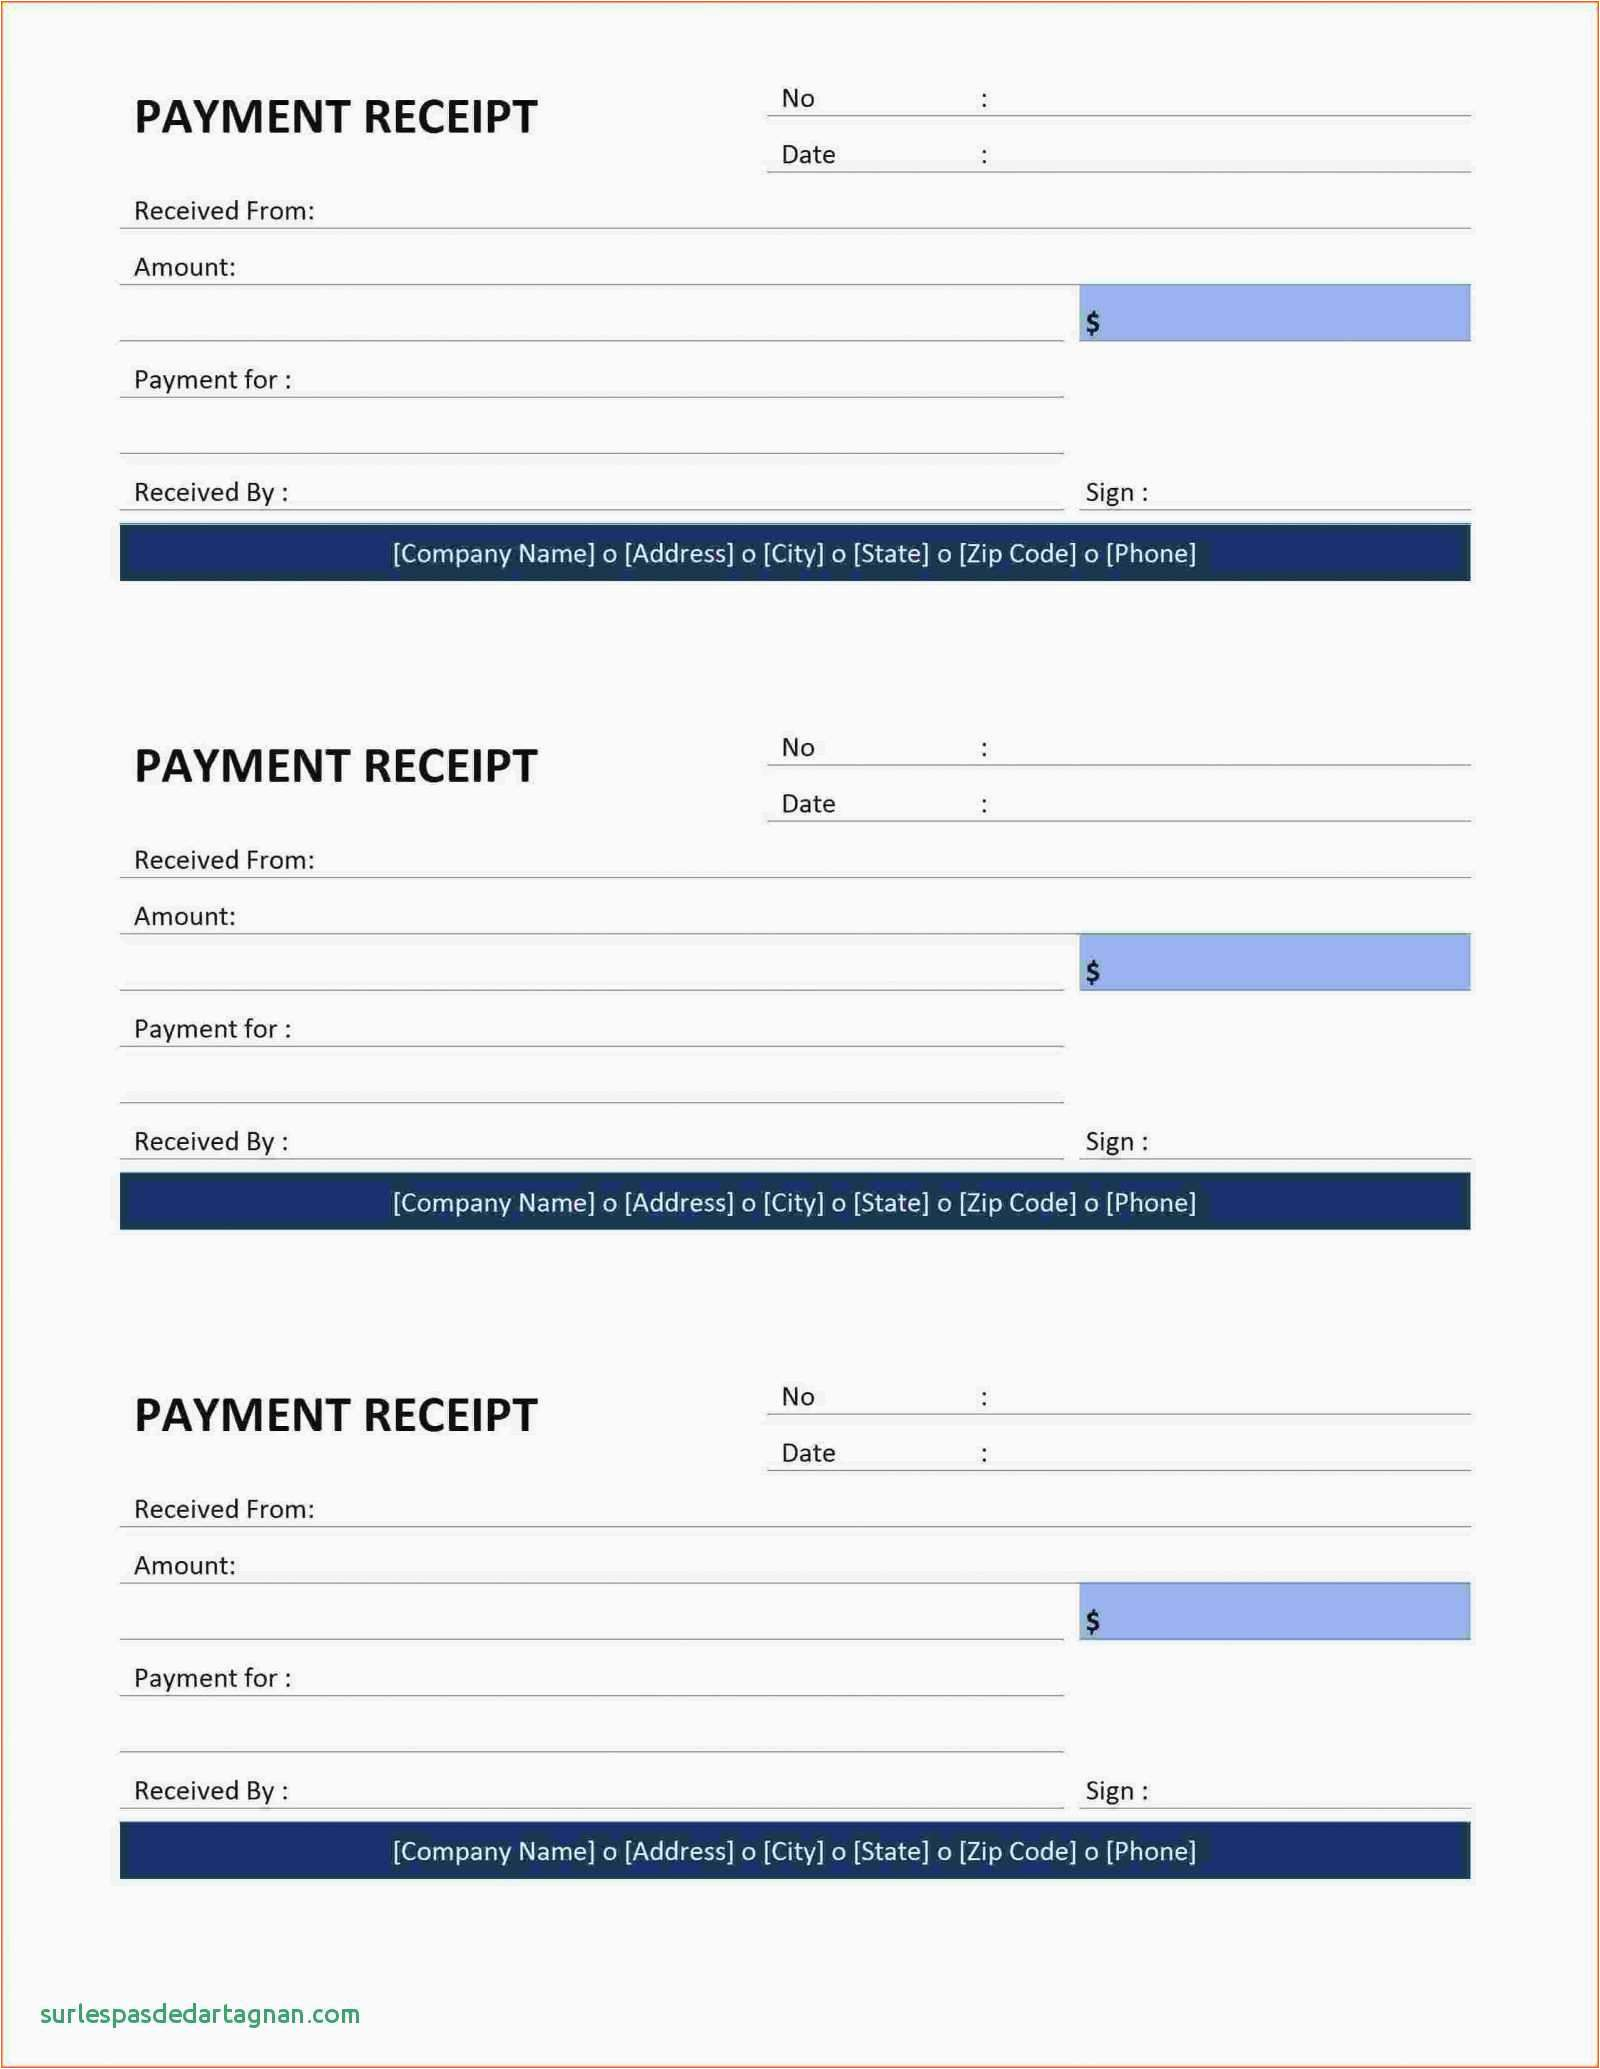 Employer Name Means - 21 Free Definition Receipt 2018